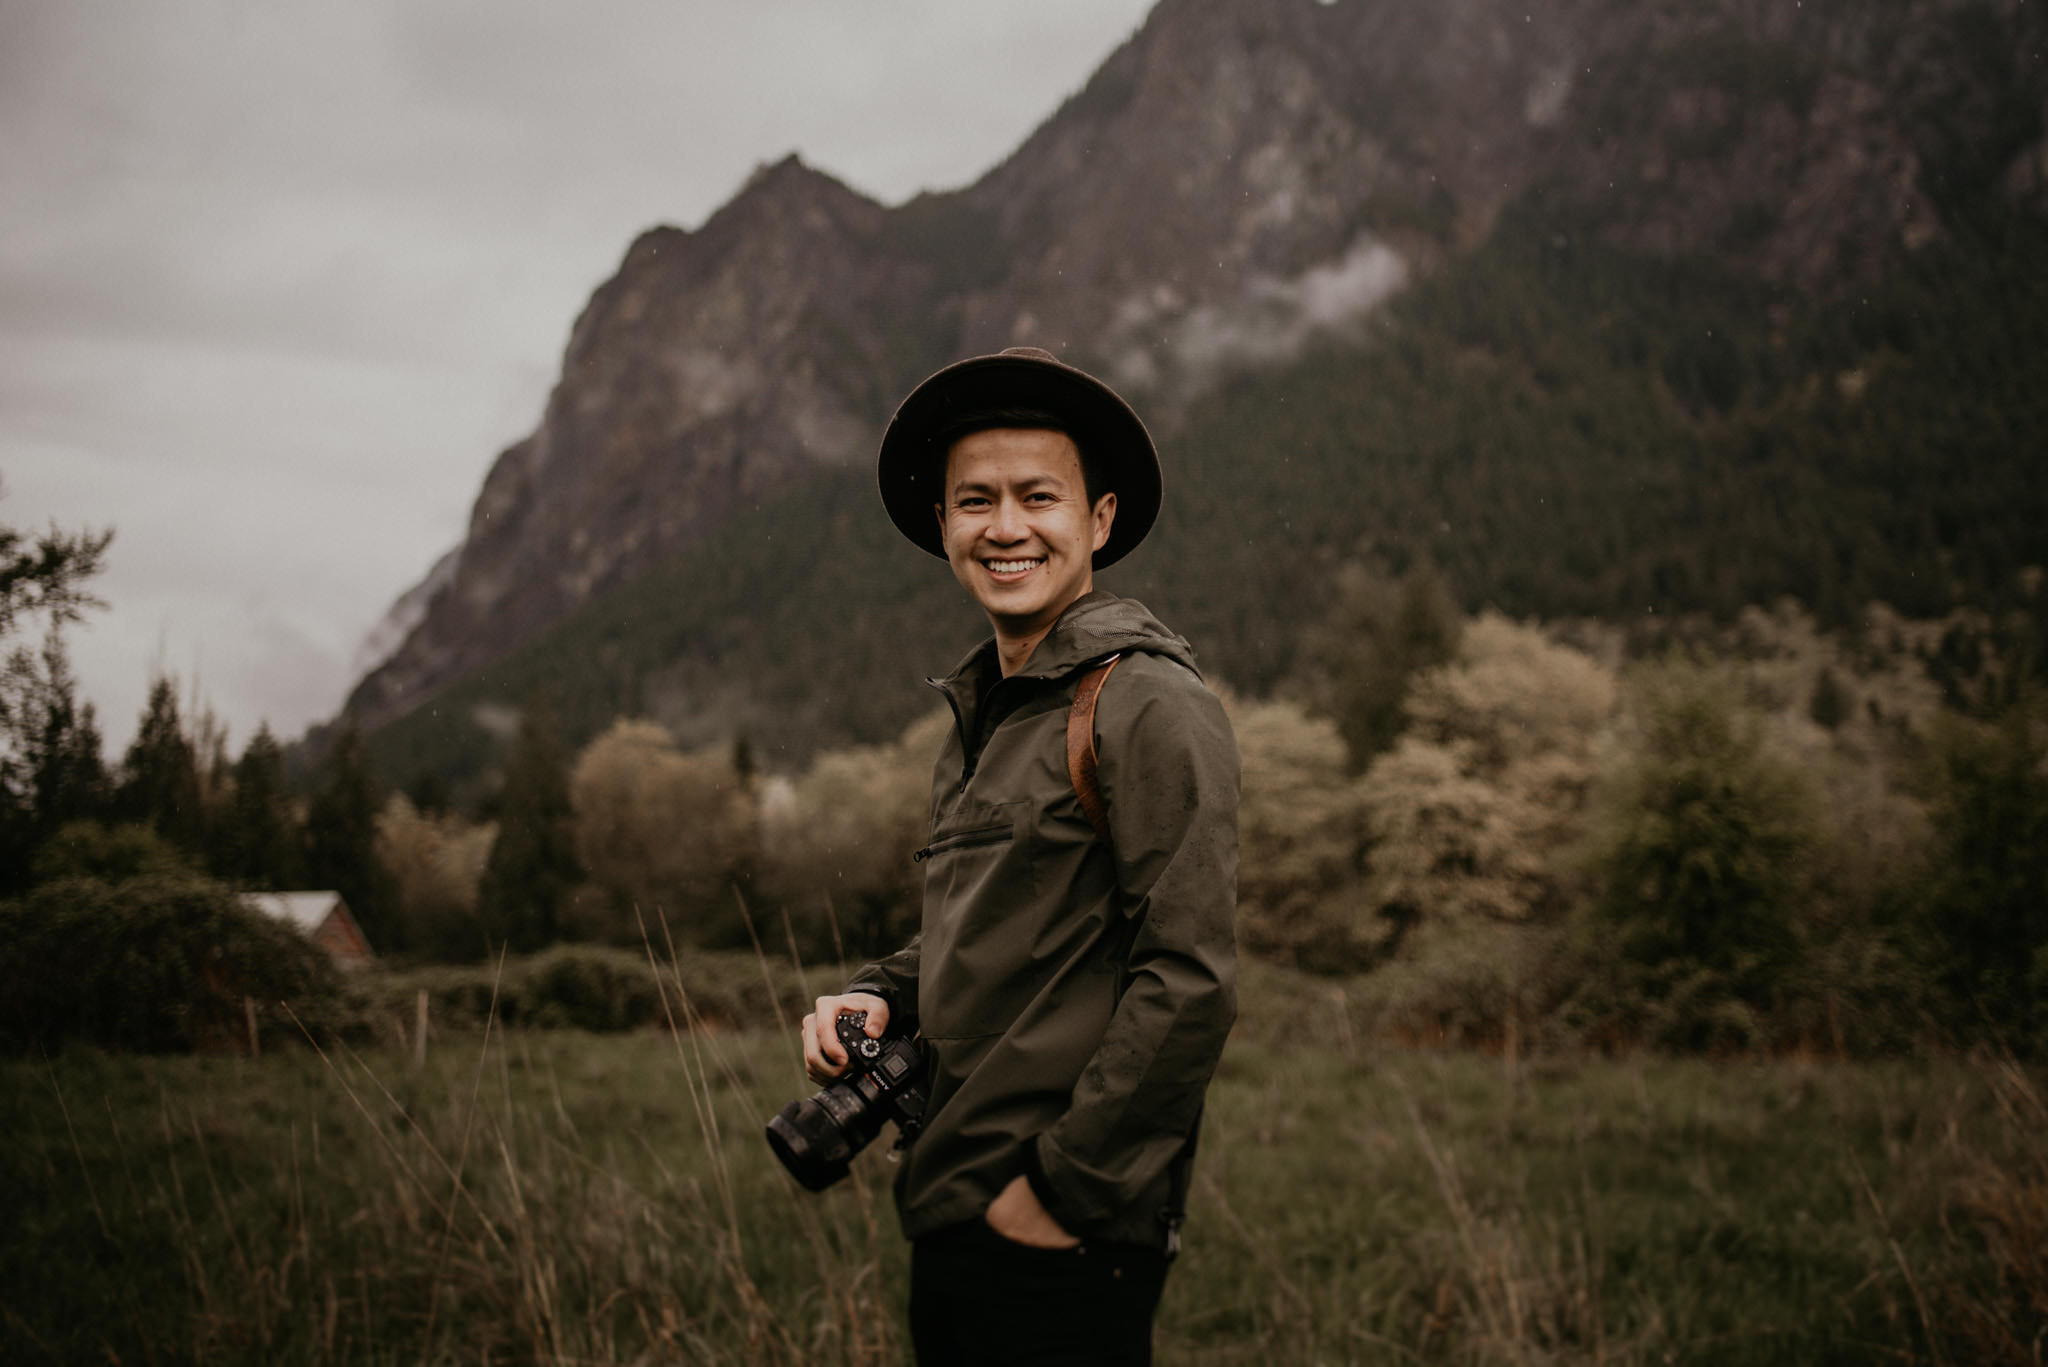 Henry Tieu - Hey girl hey, hey boy hey, my name is Henry and I am a wedding and elopement photographer based out of Seattle, WA. I am also a friend, a husband, and a father of 3 little fur babies.I hope to meet you guys to soon to share with you more about how I capture emotion and tell stories via photography, how I grew my business within 6 months and became a full time wedding photographer. I am ready to share the ups the downs and everything in between.